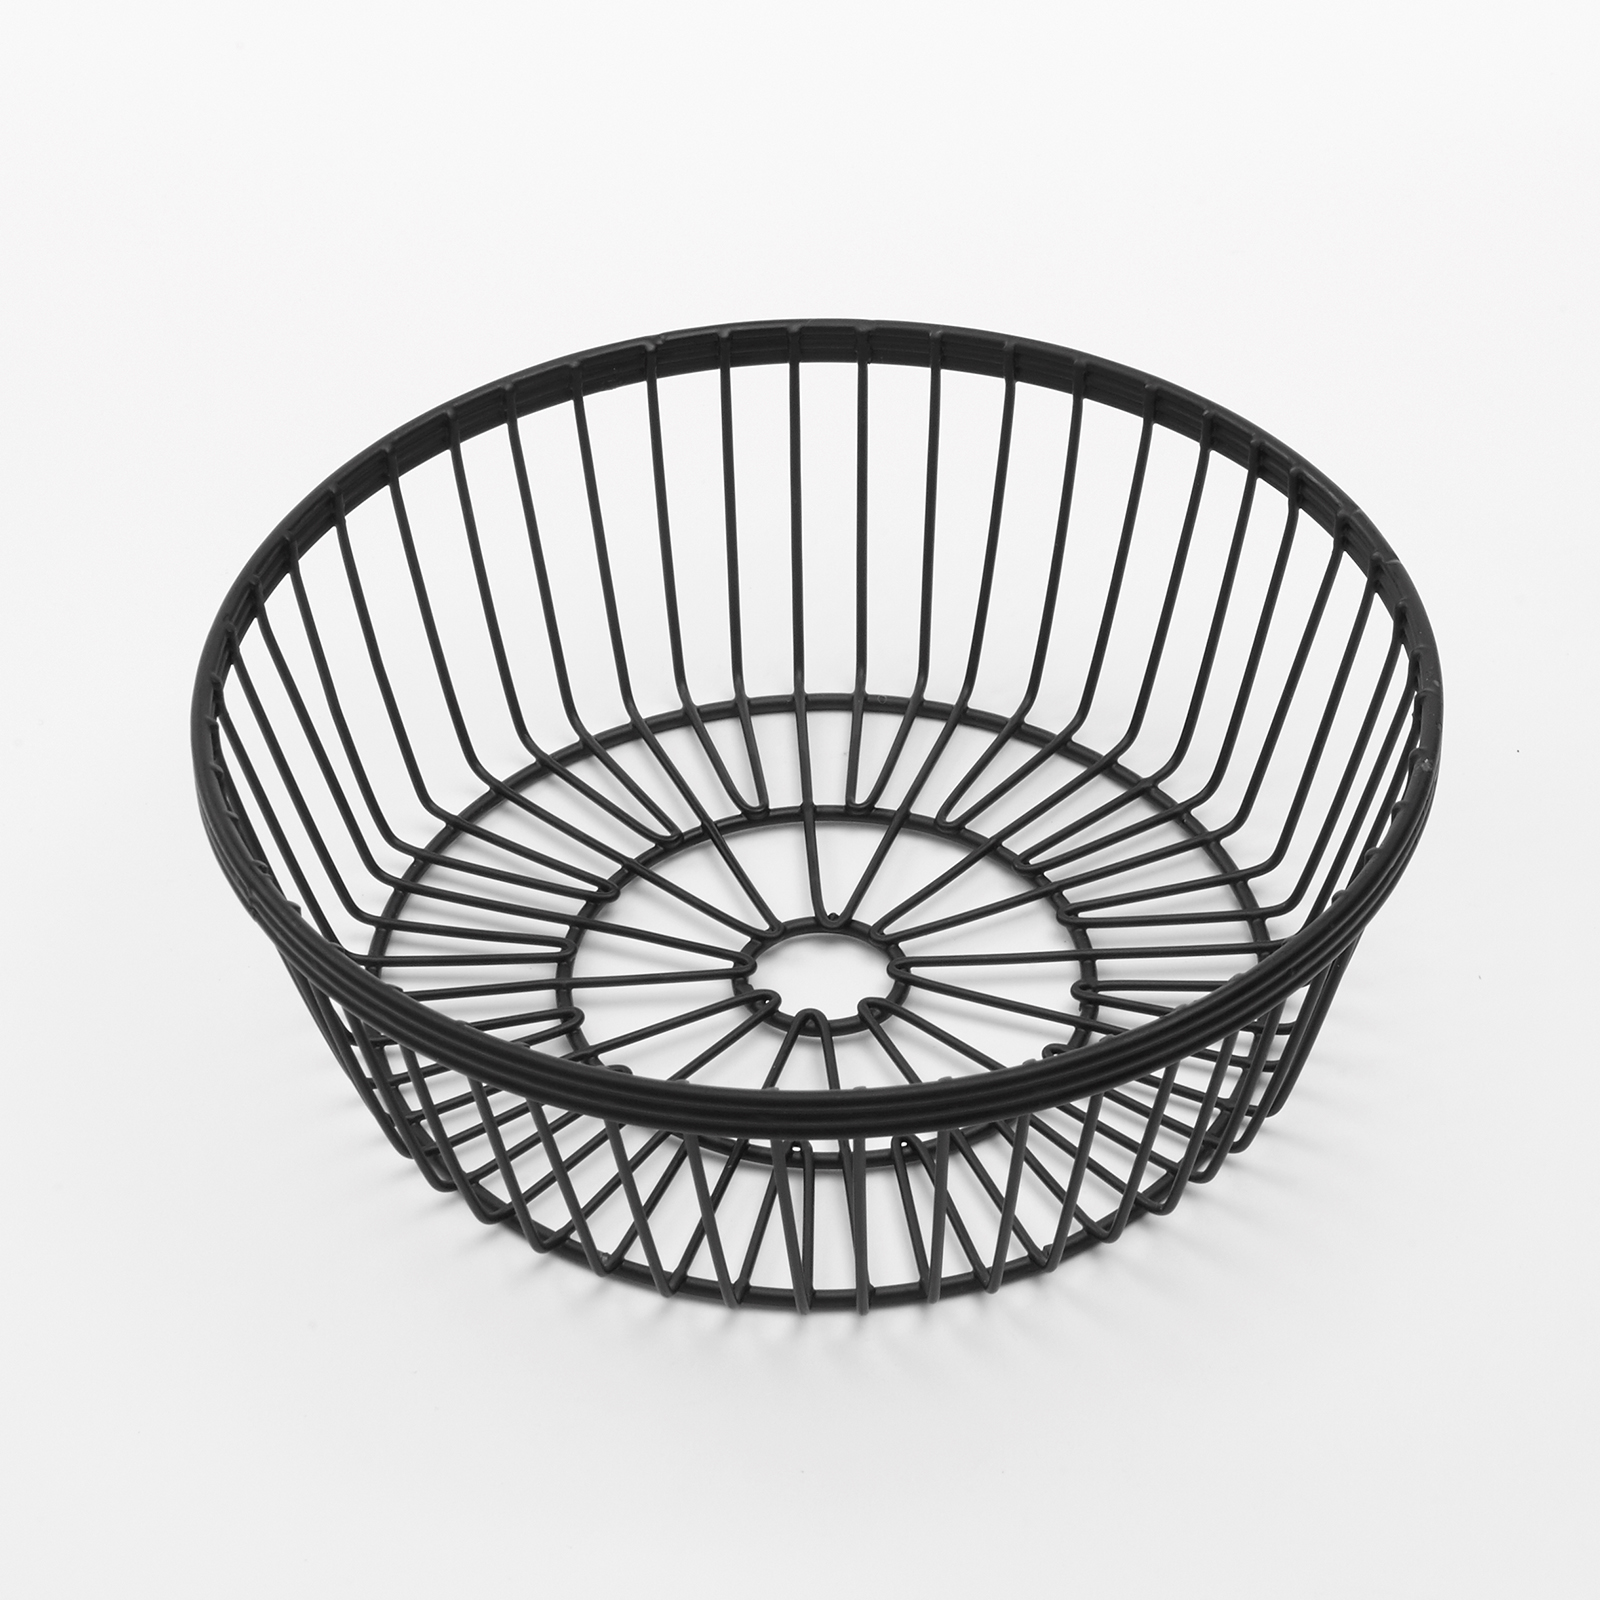 American Metalcraft WBBR80 basket, tabletop, metal